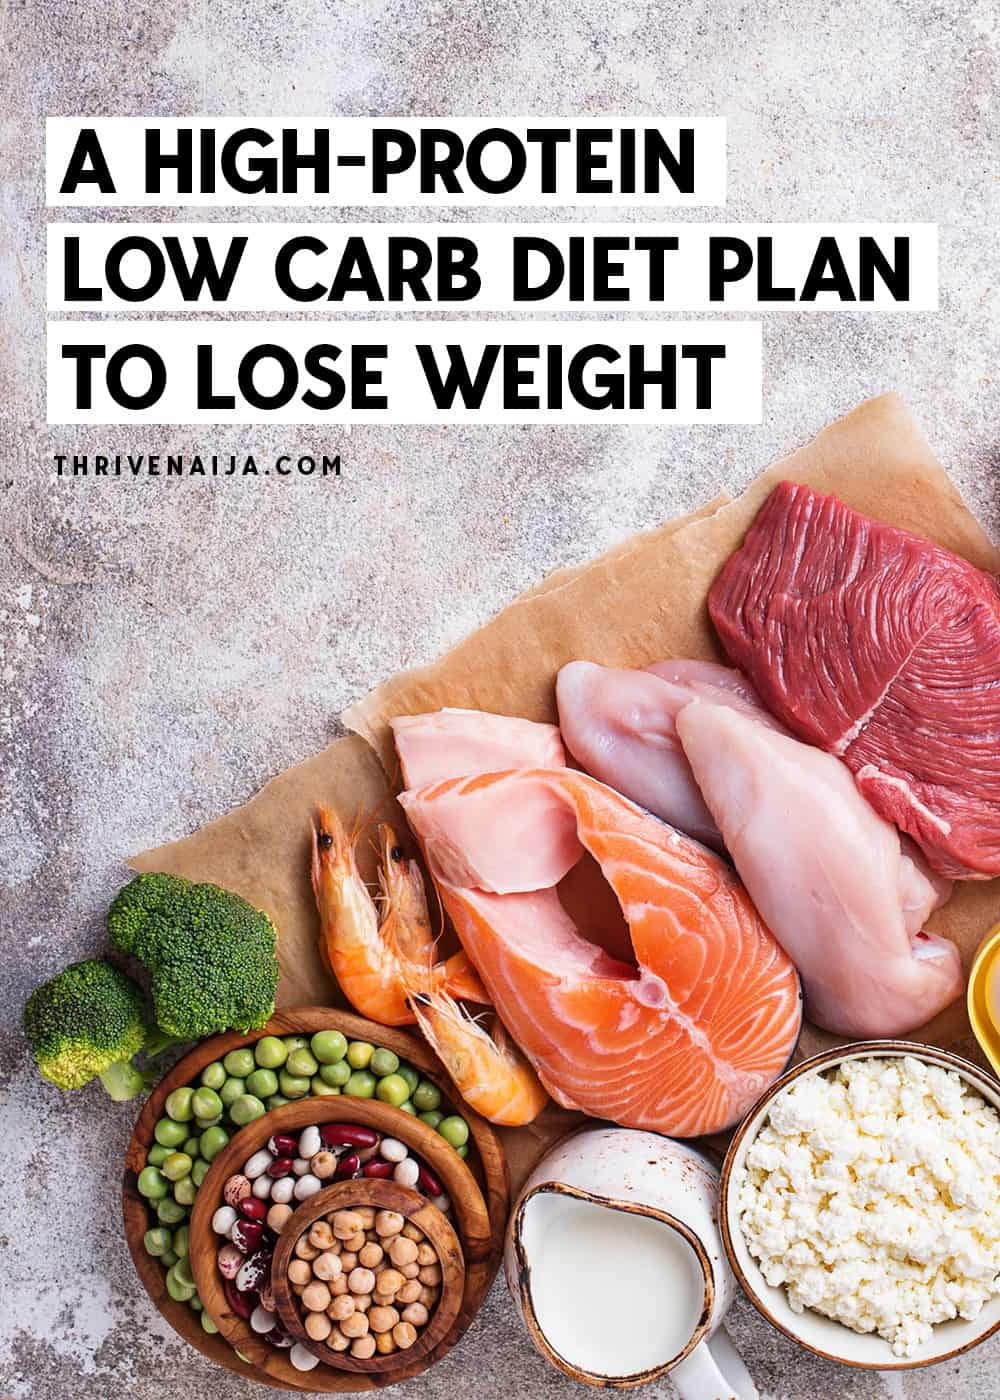 Follow this high protein weight loss guide to lose weight the healthy way